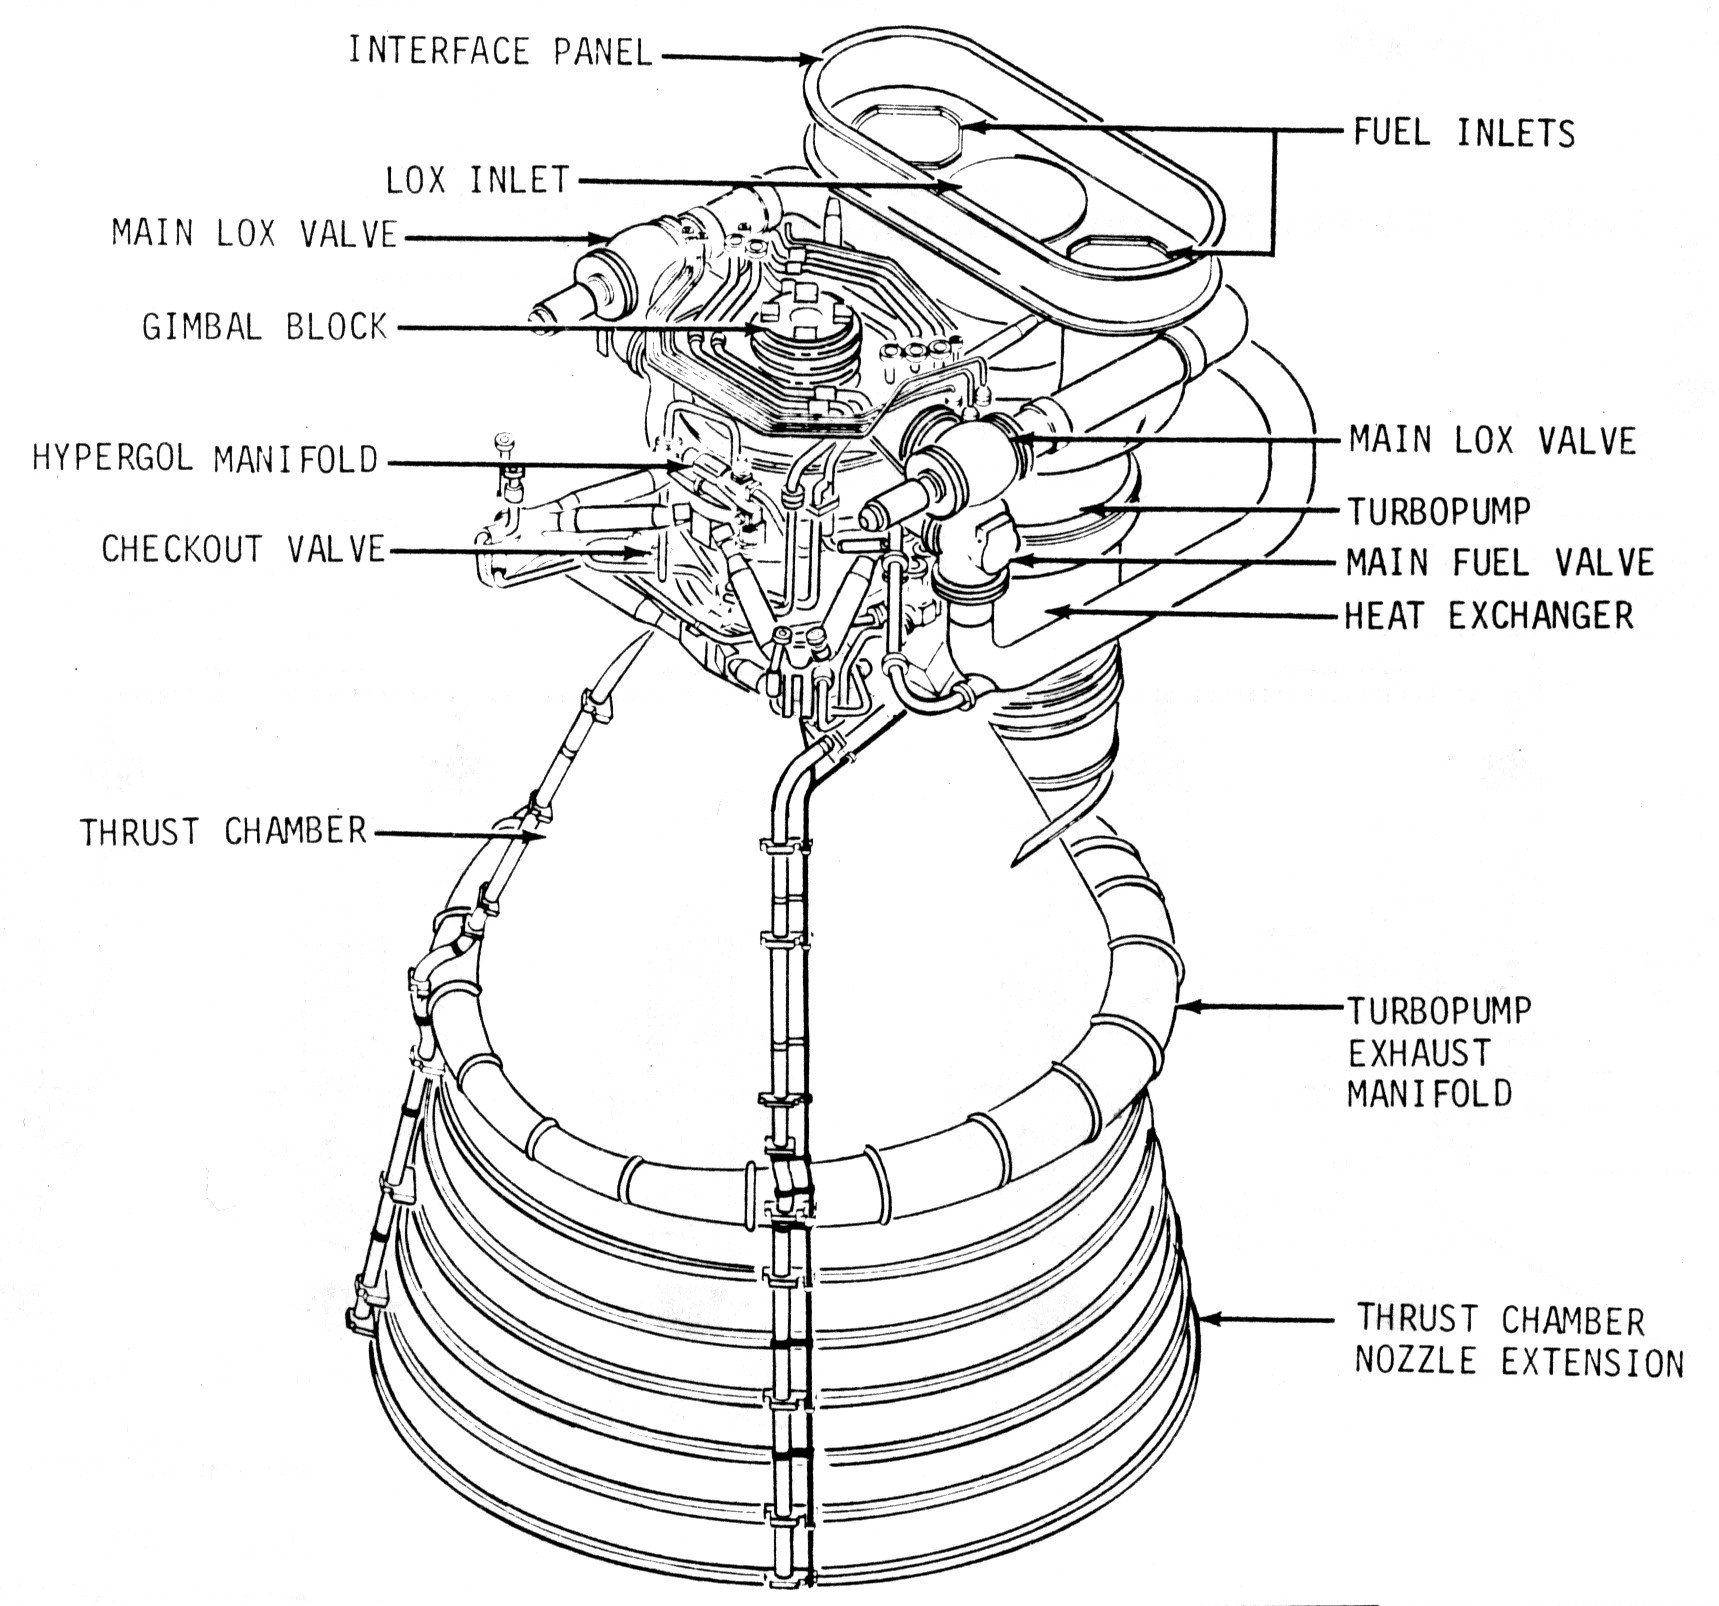 Saturn V F-1 Engine Diagram